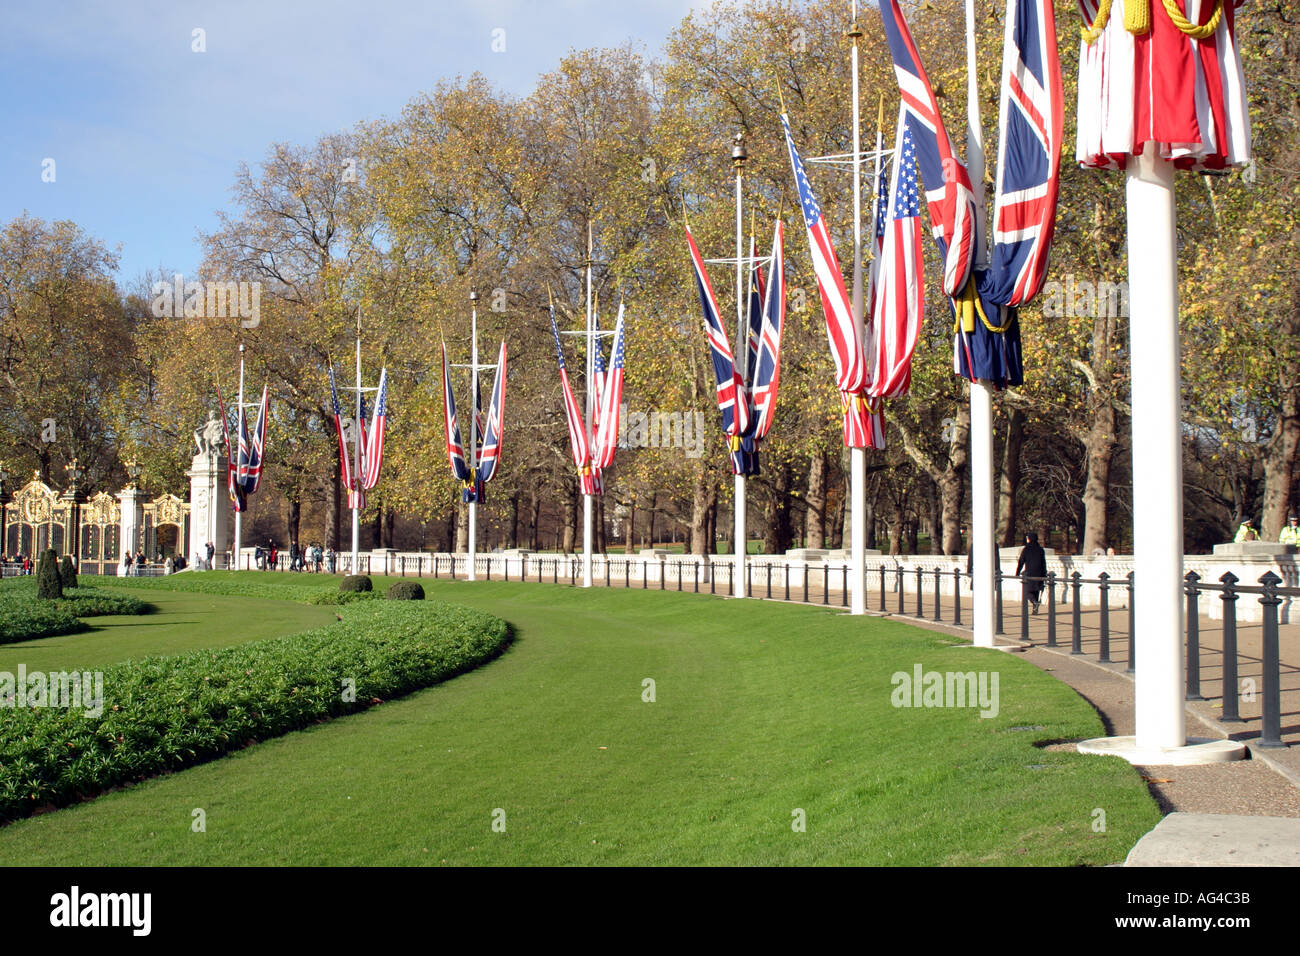 Flags of the world around the green outside Buckingham palace - Stock Image